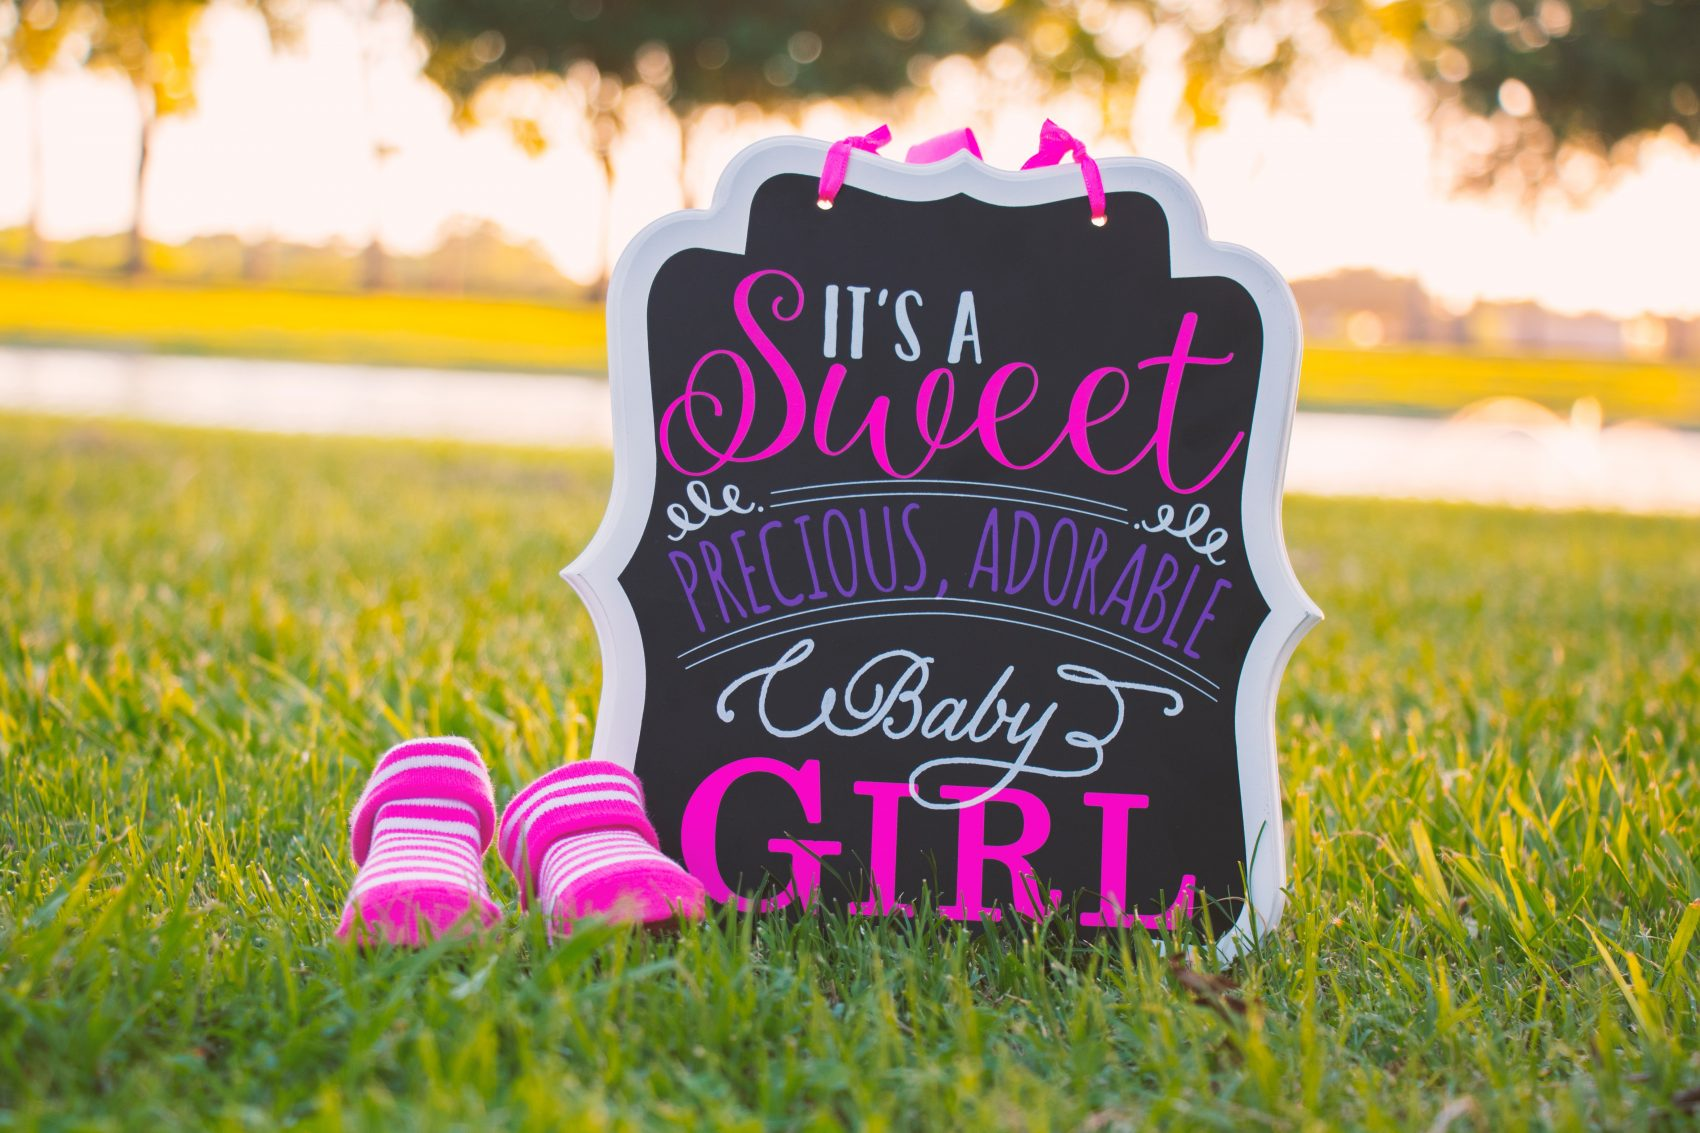 Is It A Boy? Girl? Time To Stop Asking? The Gender Reveal Party Reconsidered